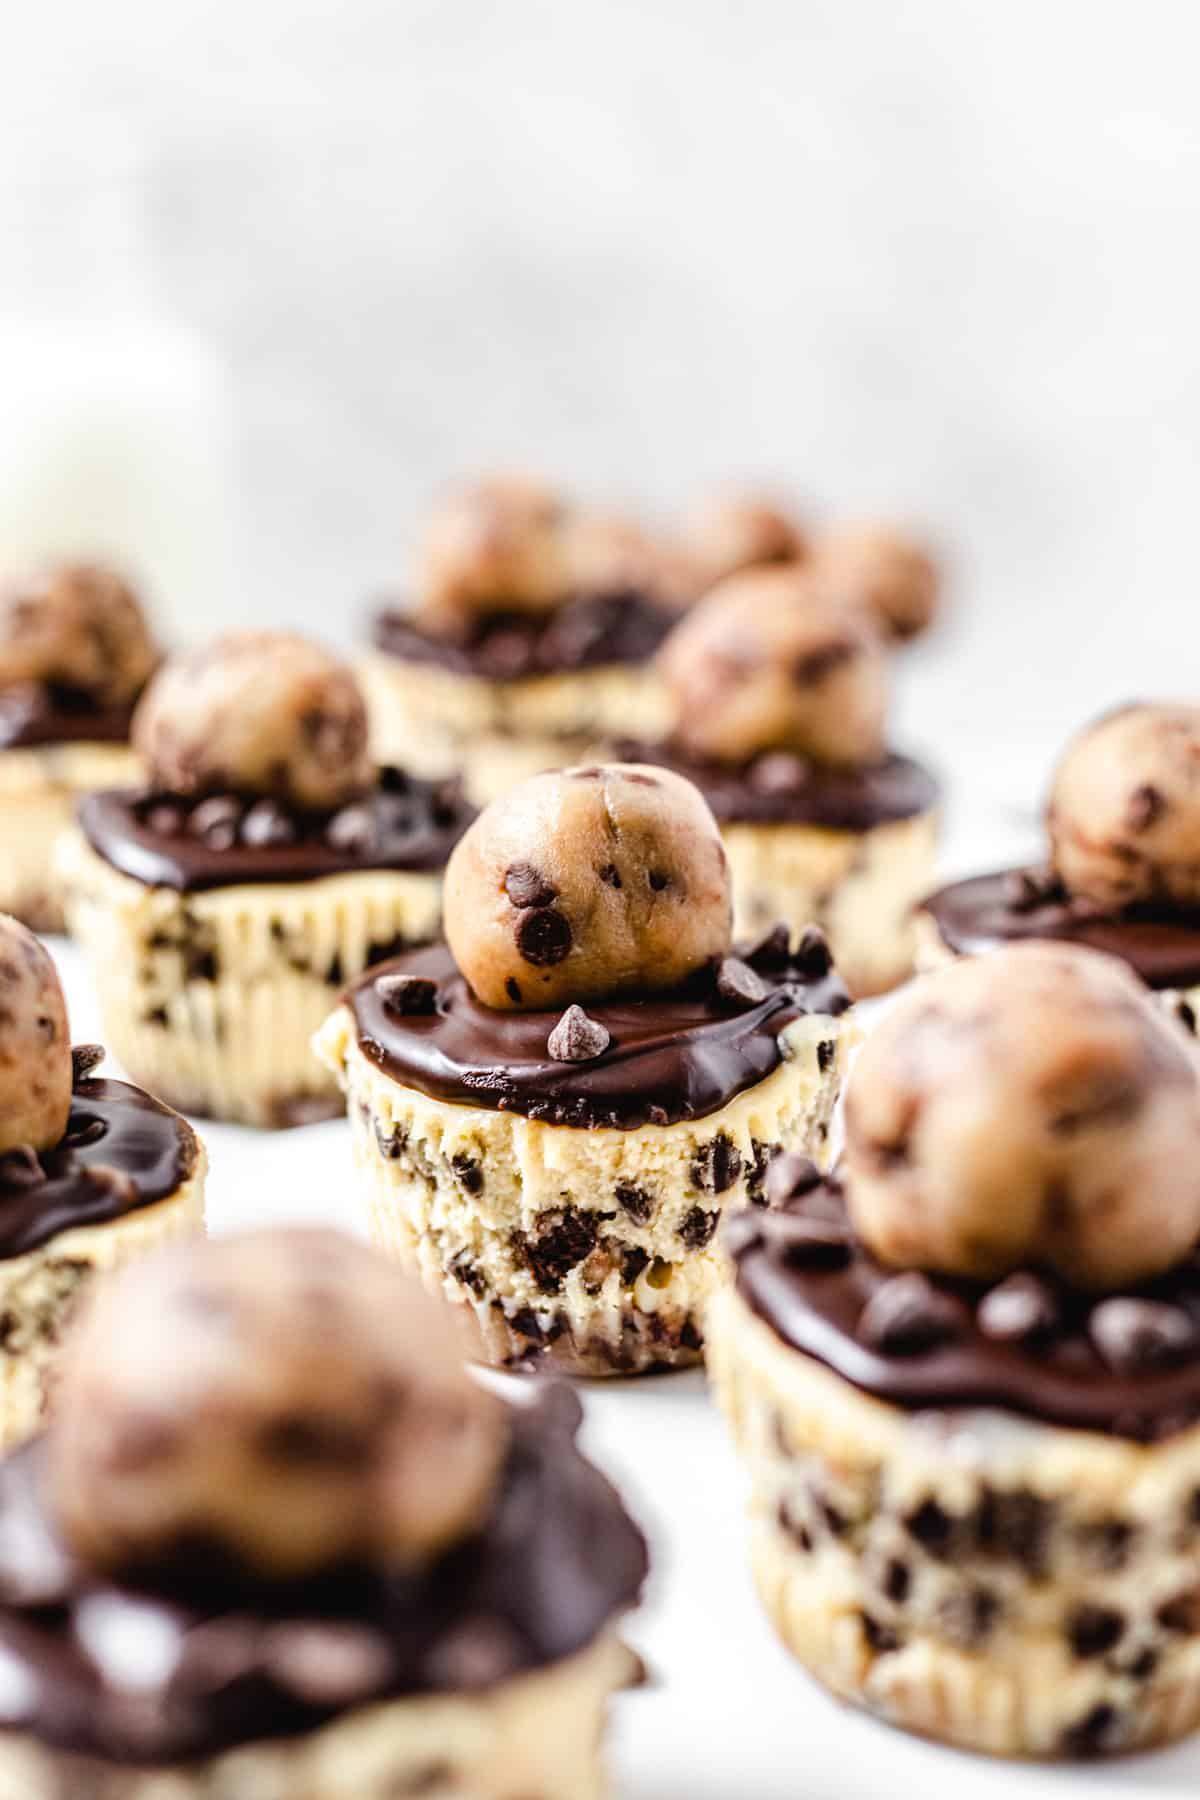 cookie dough topped cheesecake cupcake in the middle of many other cheesecakes